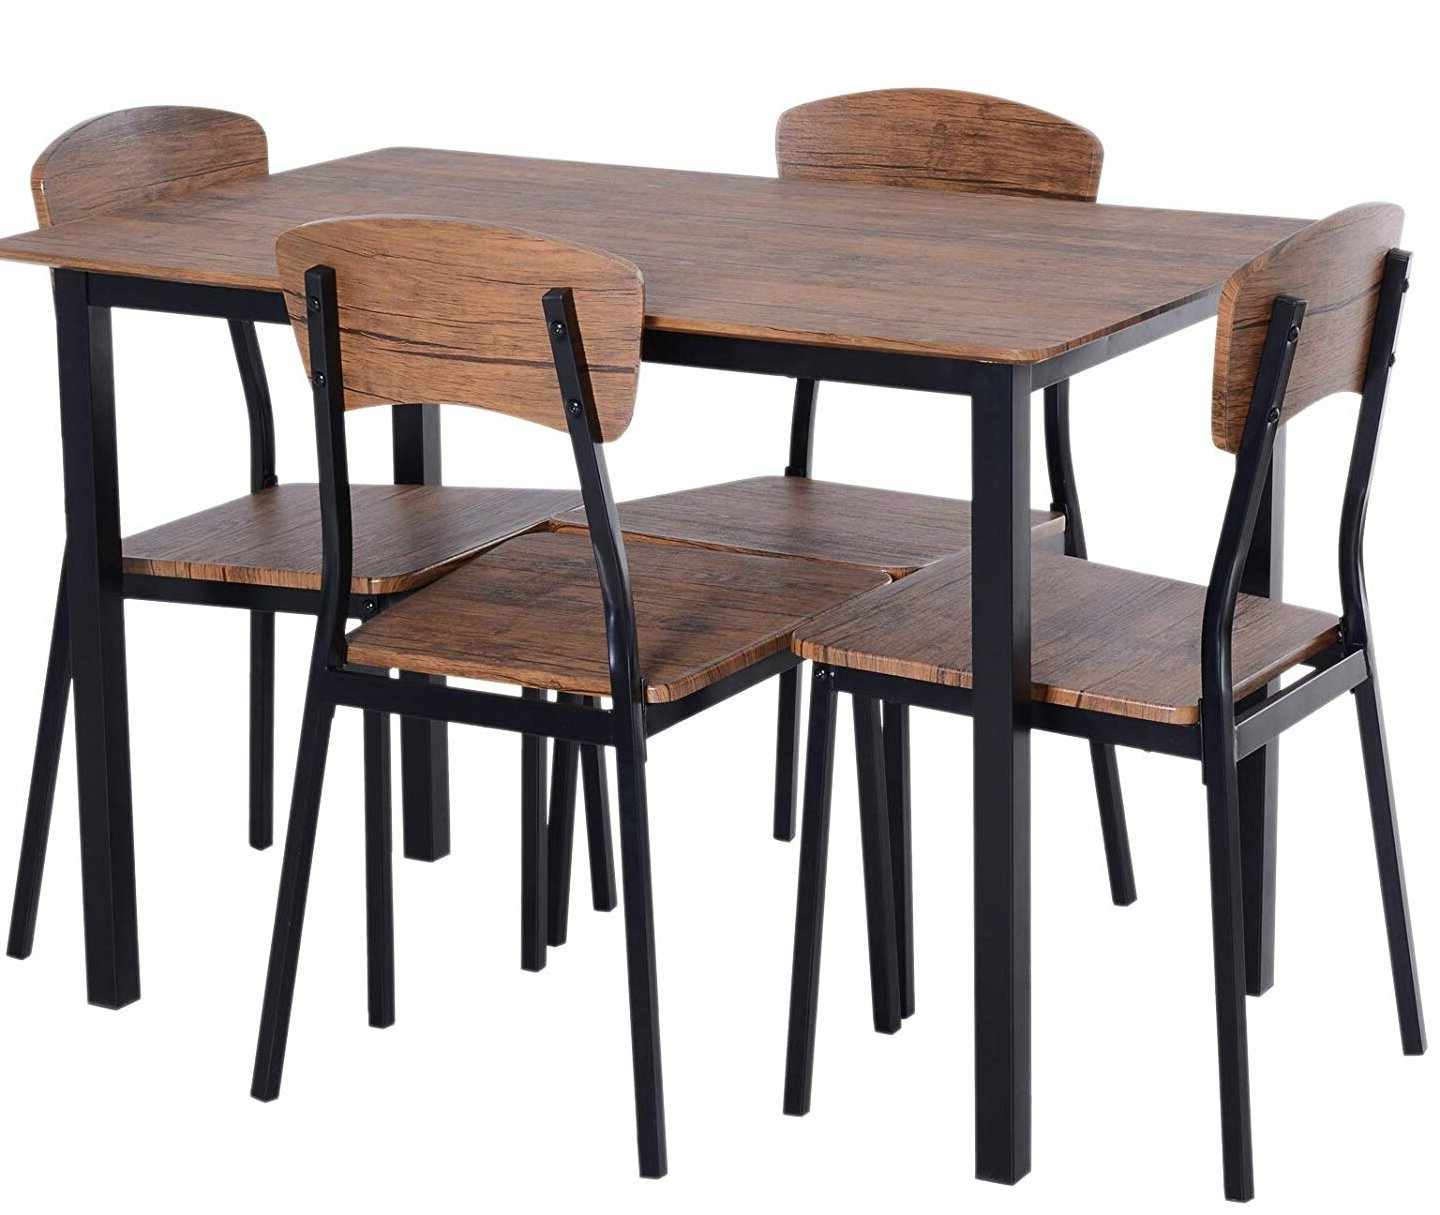 Emmeline 5 Piece Breakfast Nook Dining Sets Pertaining To Most Recently Released Union Rustic Castellanos Modern 5 Piece Counter Height Dining Set (View 7 of 20)